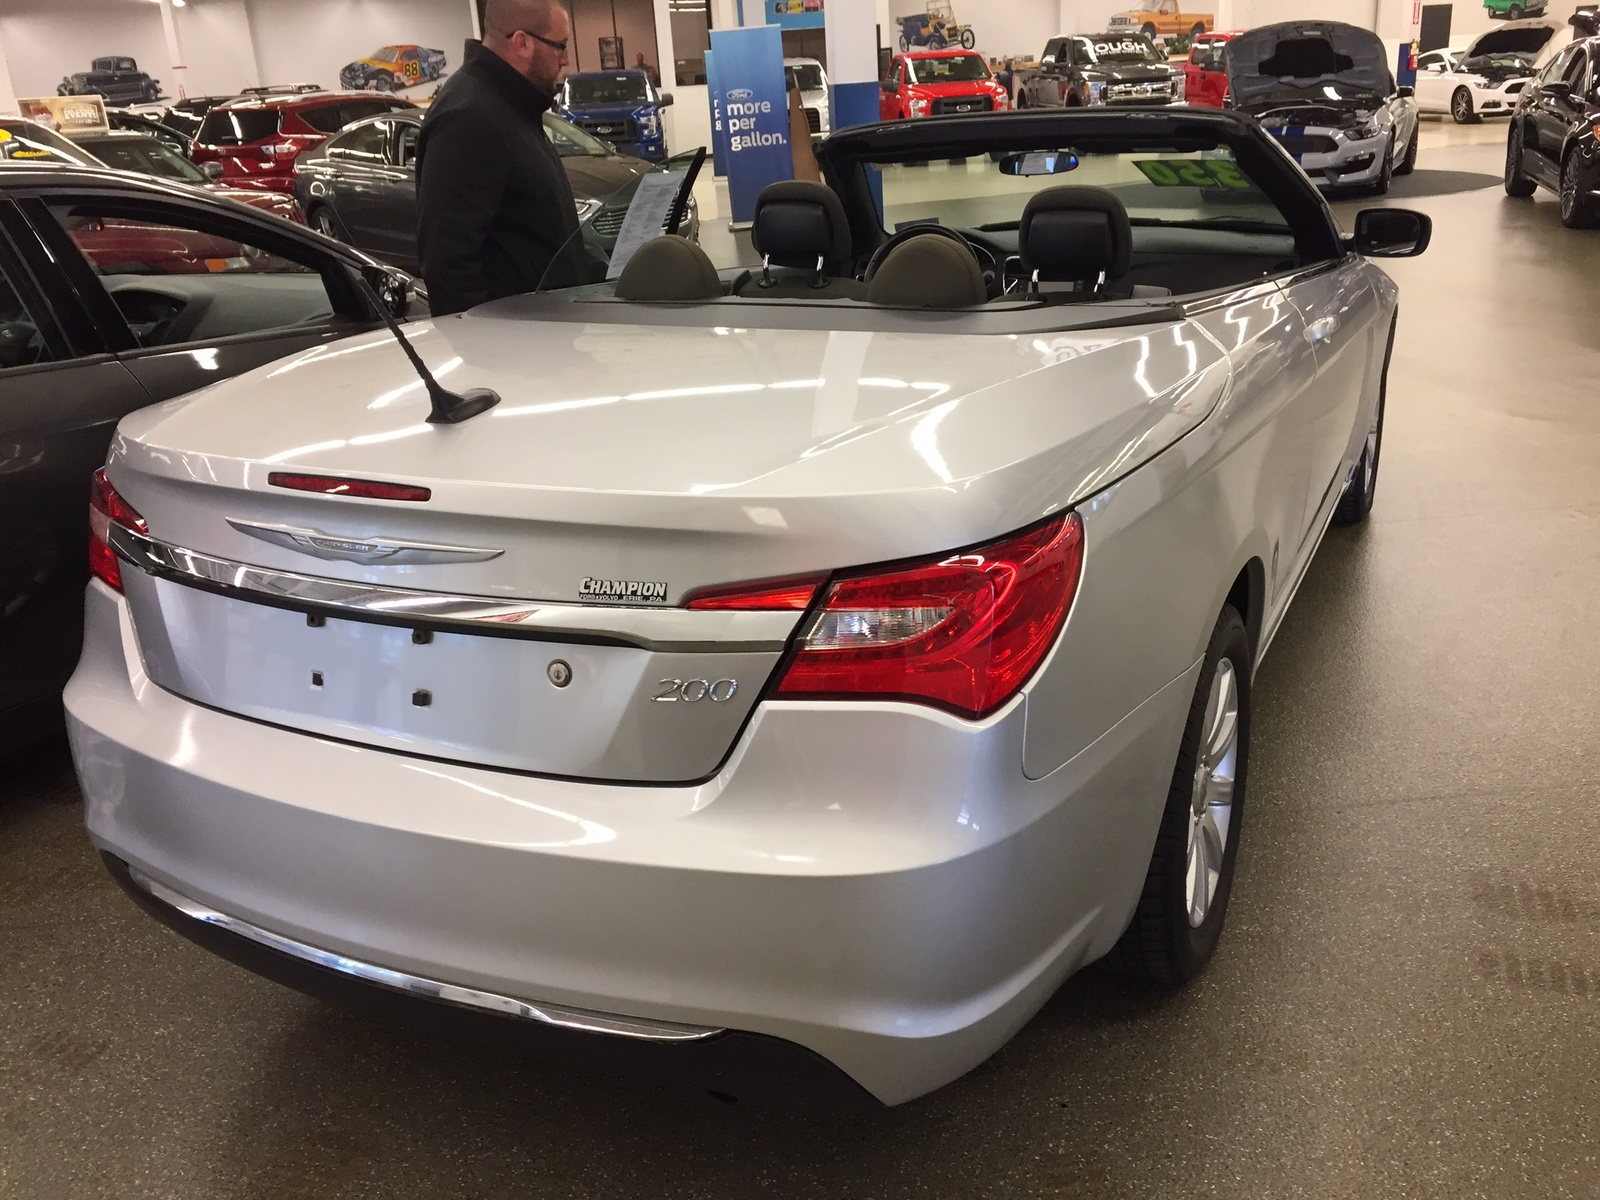 Picture of 2011 chrysler 200 touring convertible exterior gallery_worthy